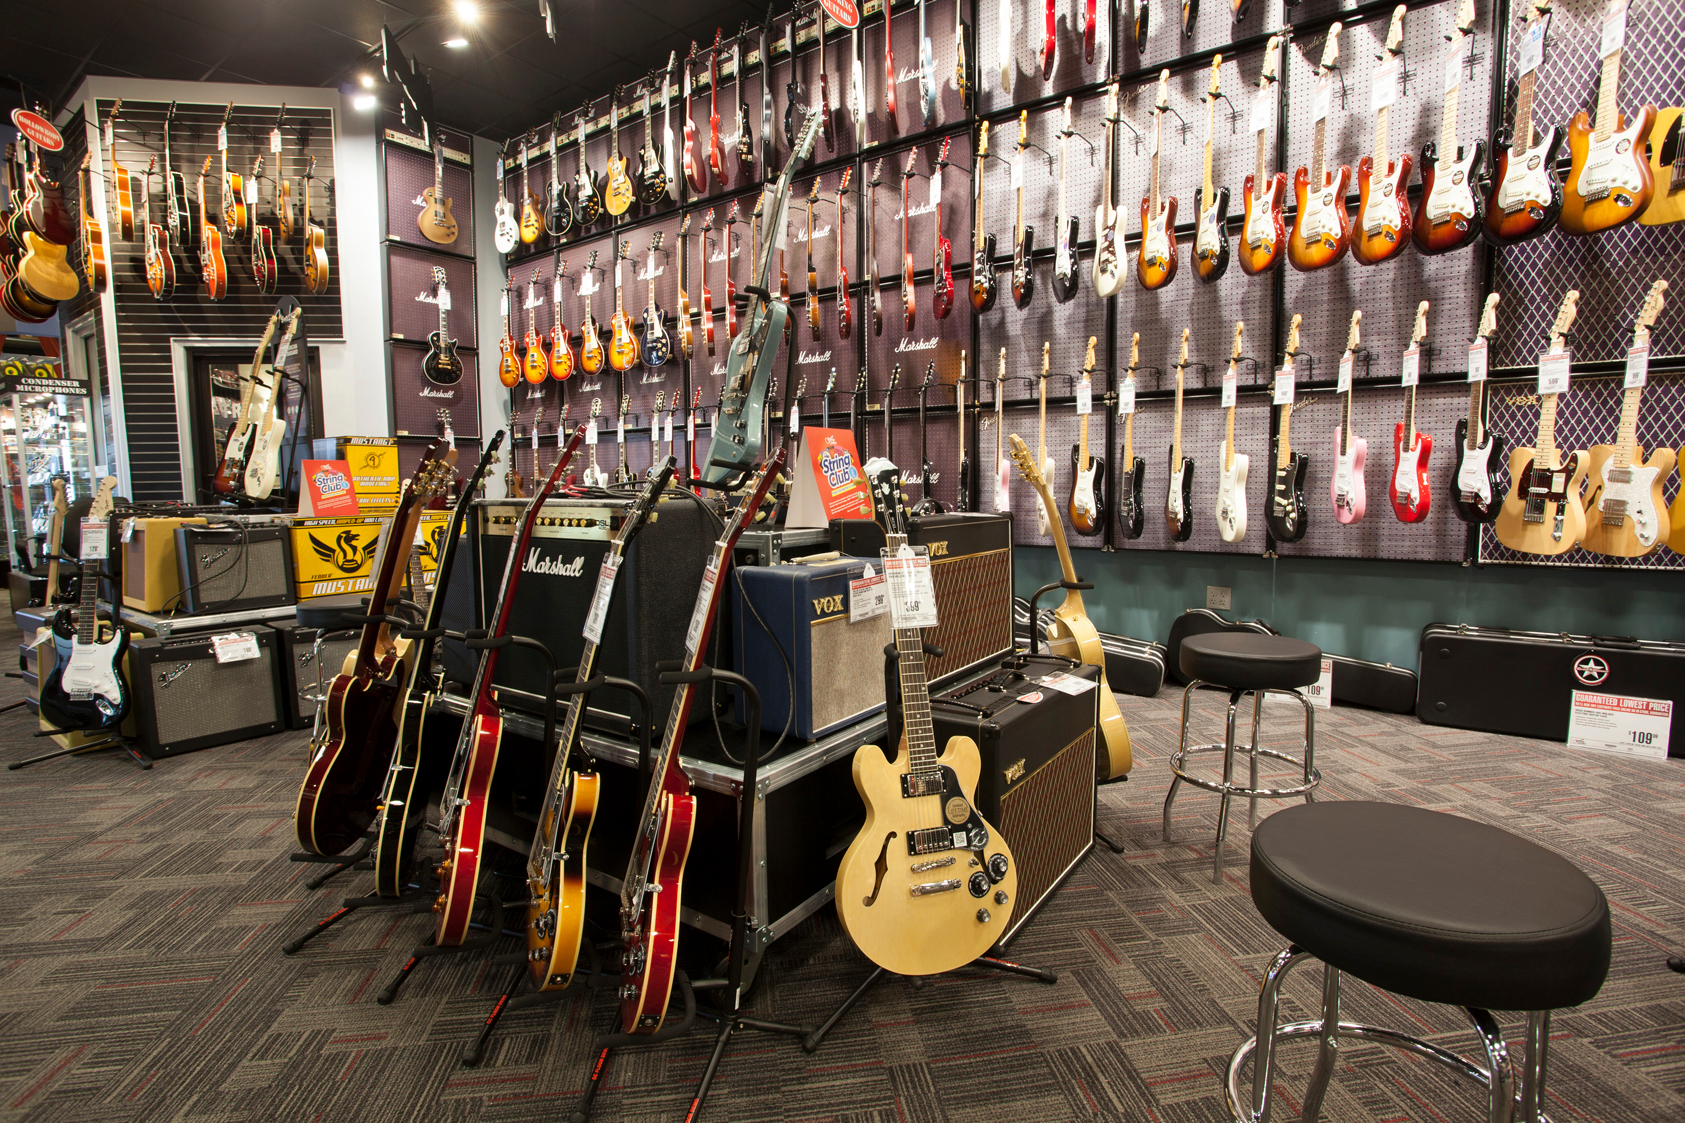 guitar center coupons near me in ocean nj 07712 8coupons. Black Bedroom Furniture Sets. Home Design Ideas